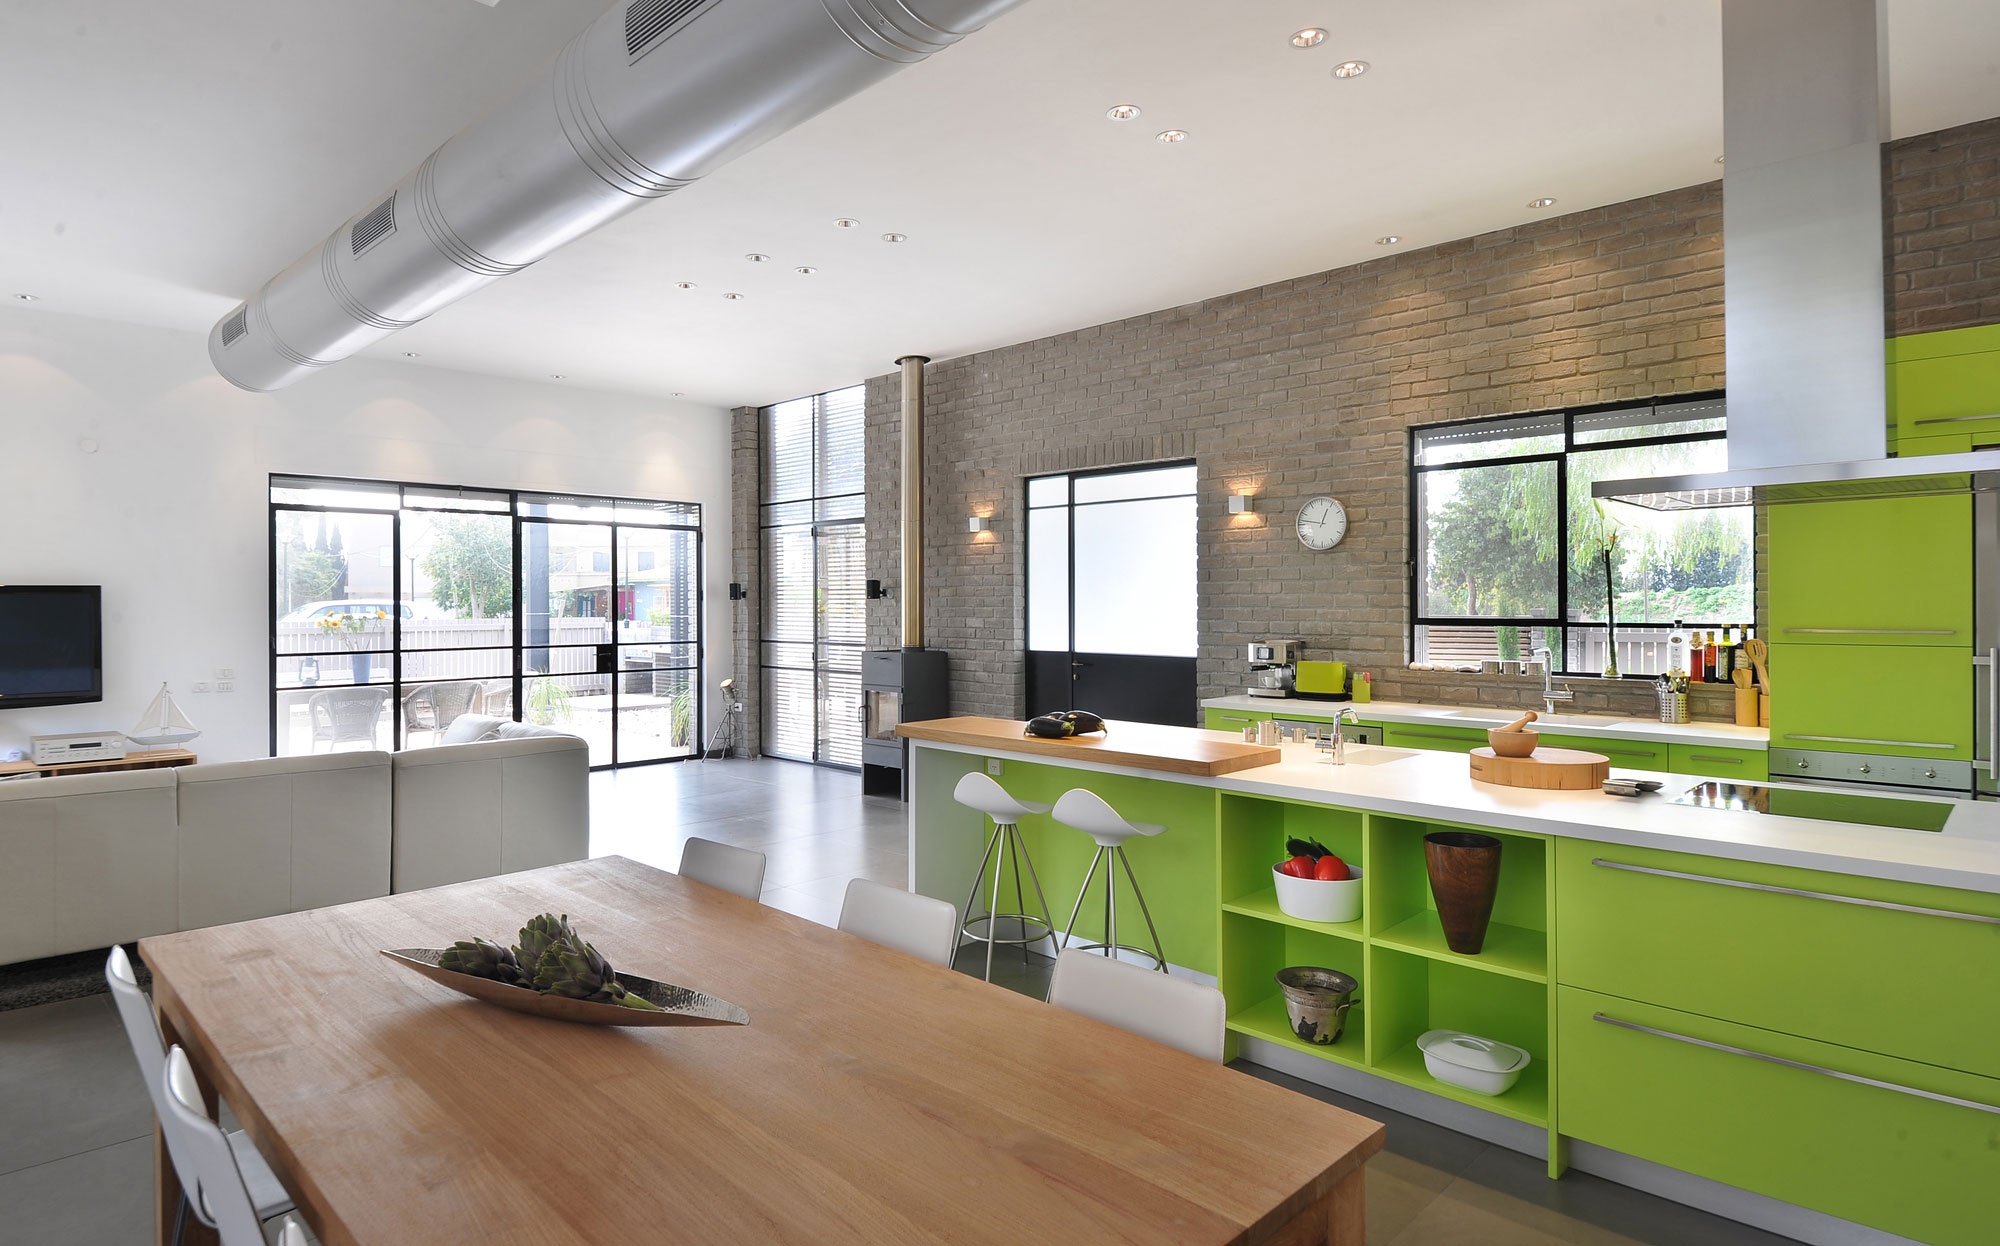 The Kibuts House by Sharon Neuman Architects